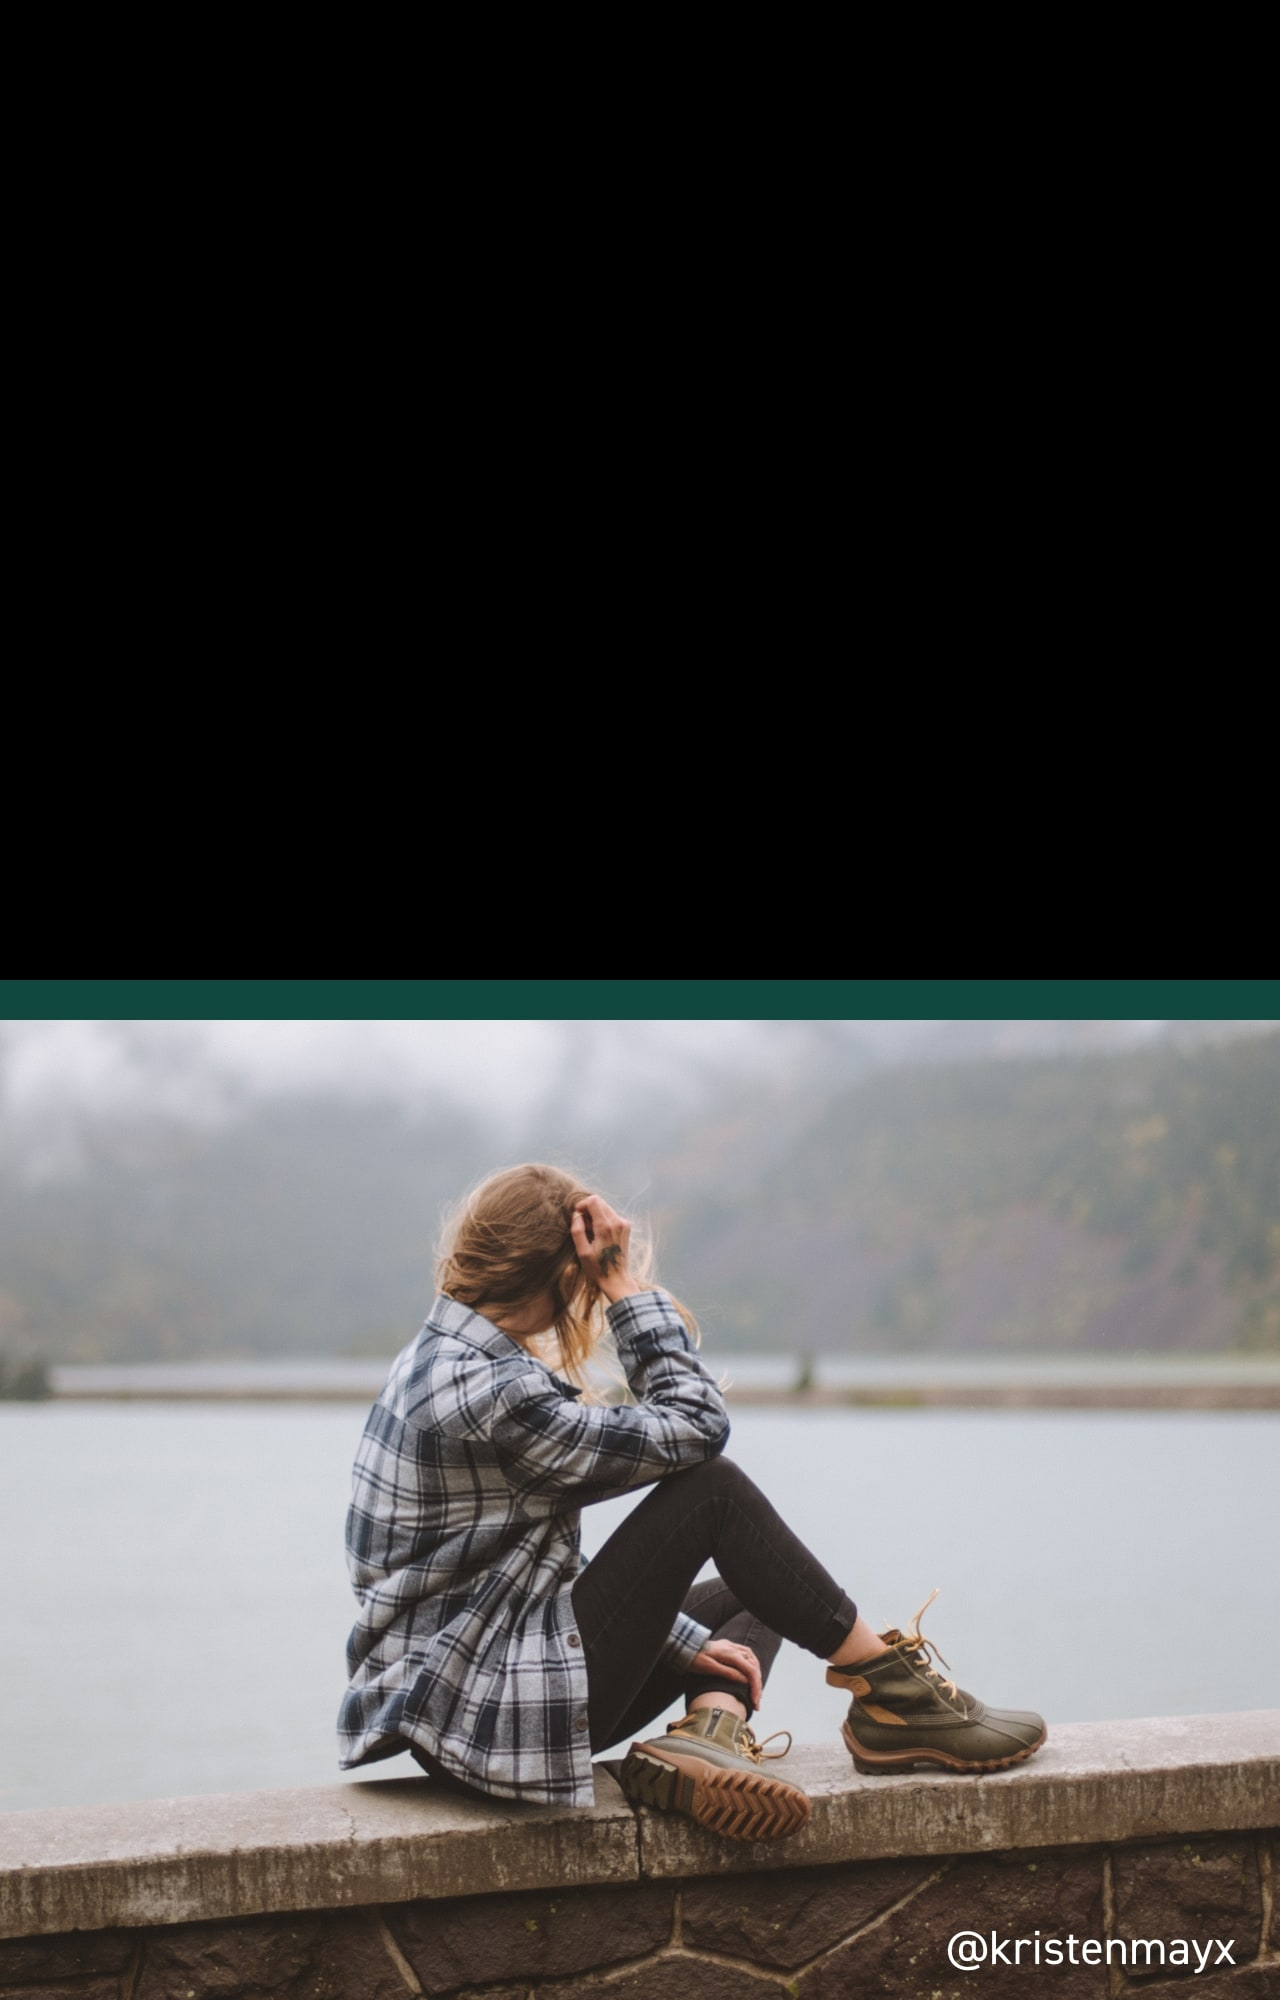 Person wearing Torrent boots sitting on a ledge overlooking a lake.